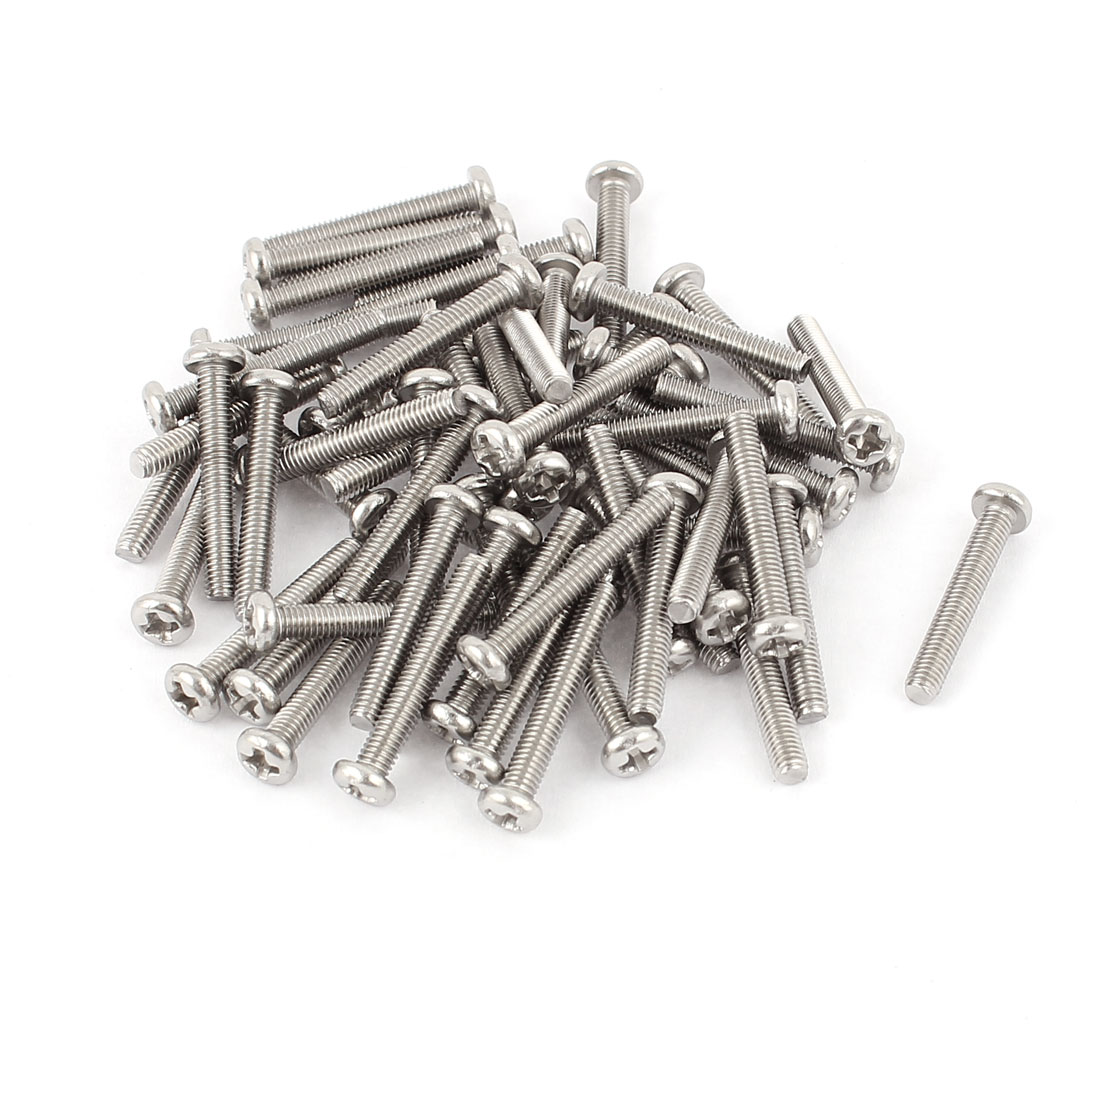 M3 x 20mm 304 Stainless Steel Crosshead Phillips Pan Head Screws Bolt 60pcs